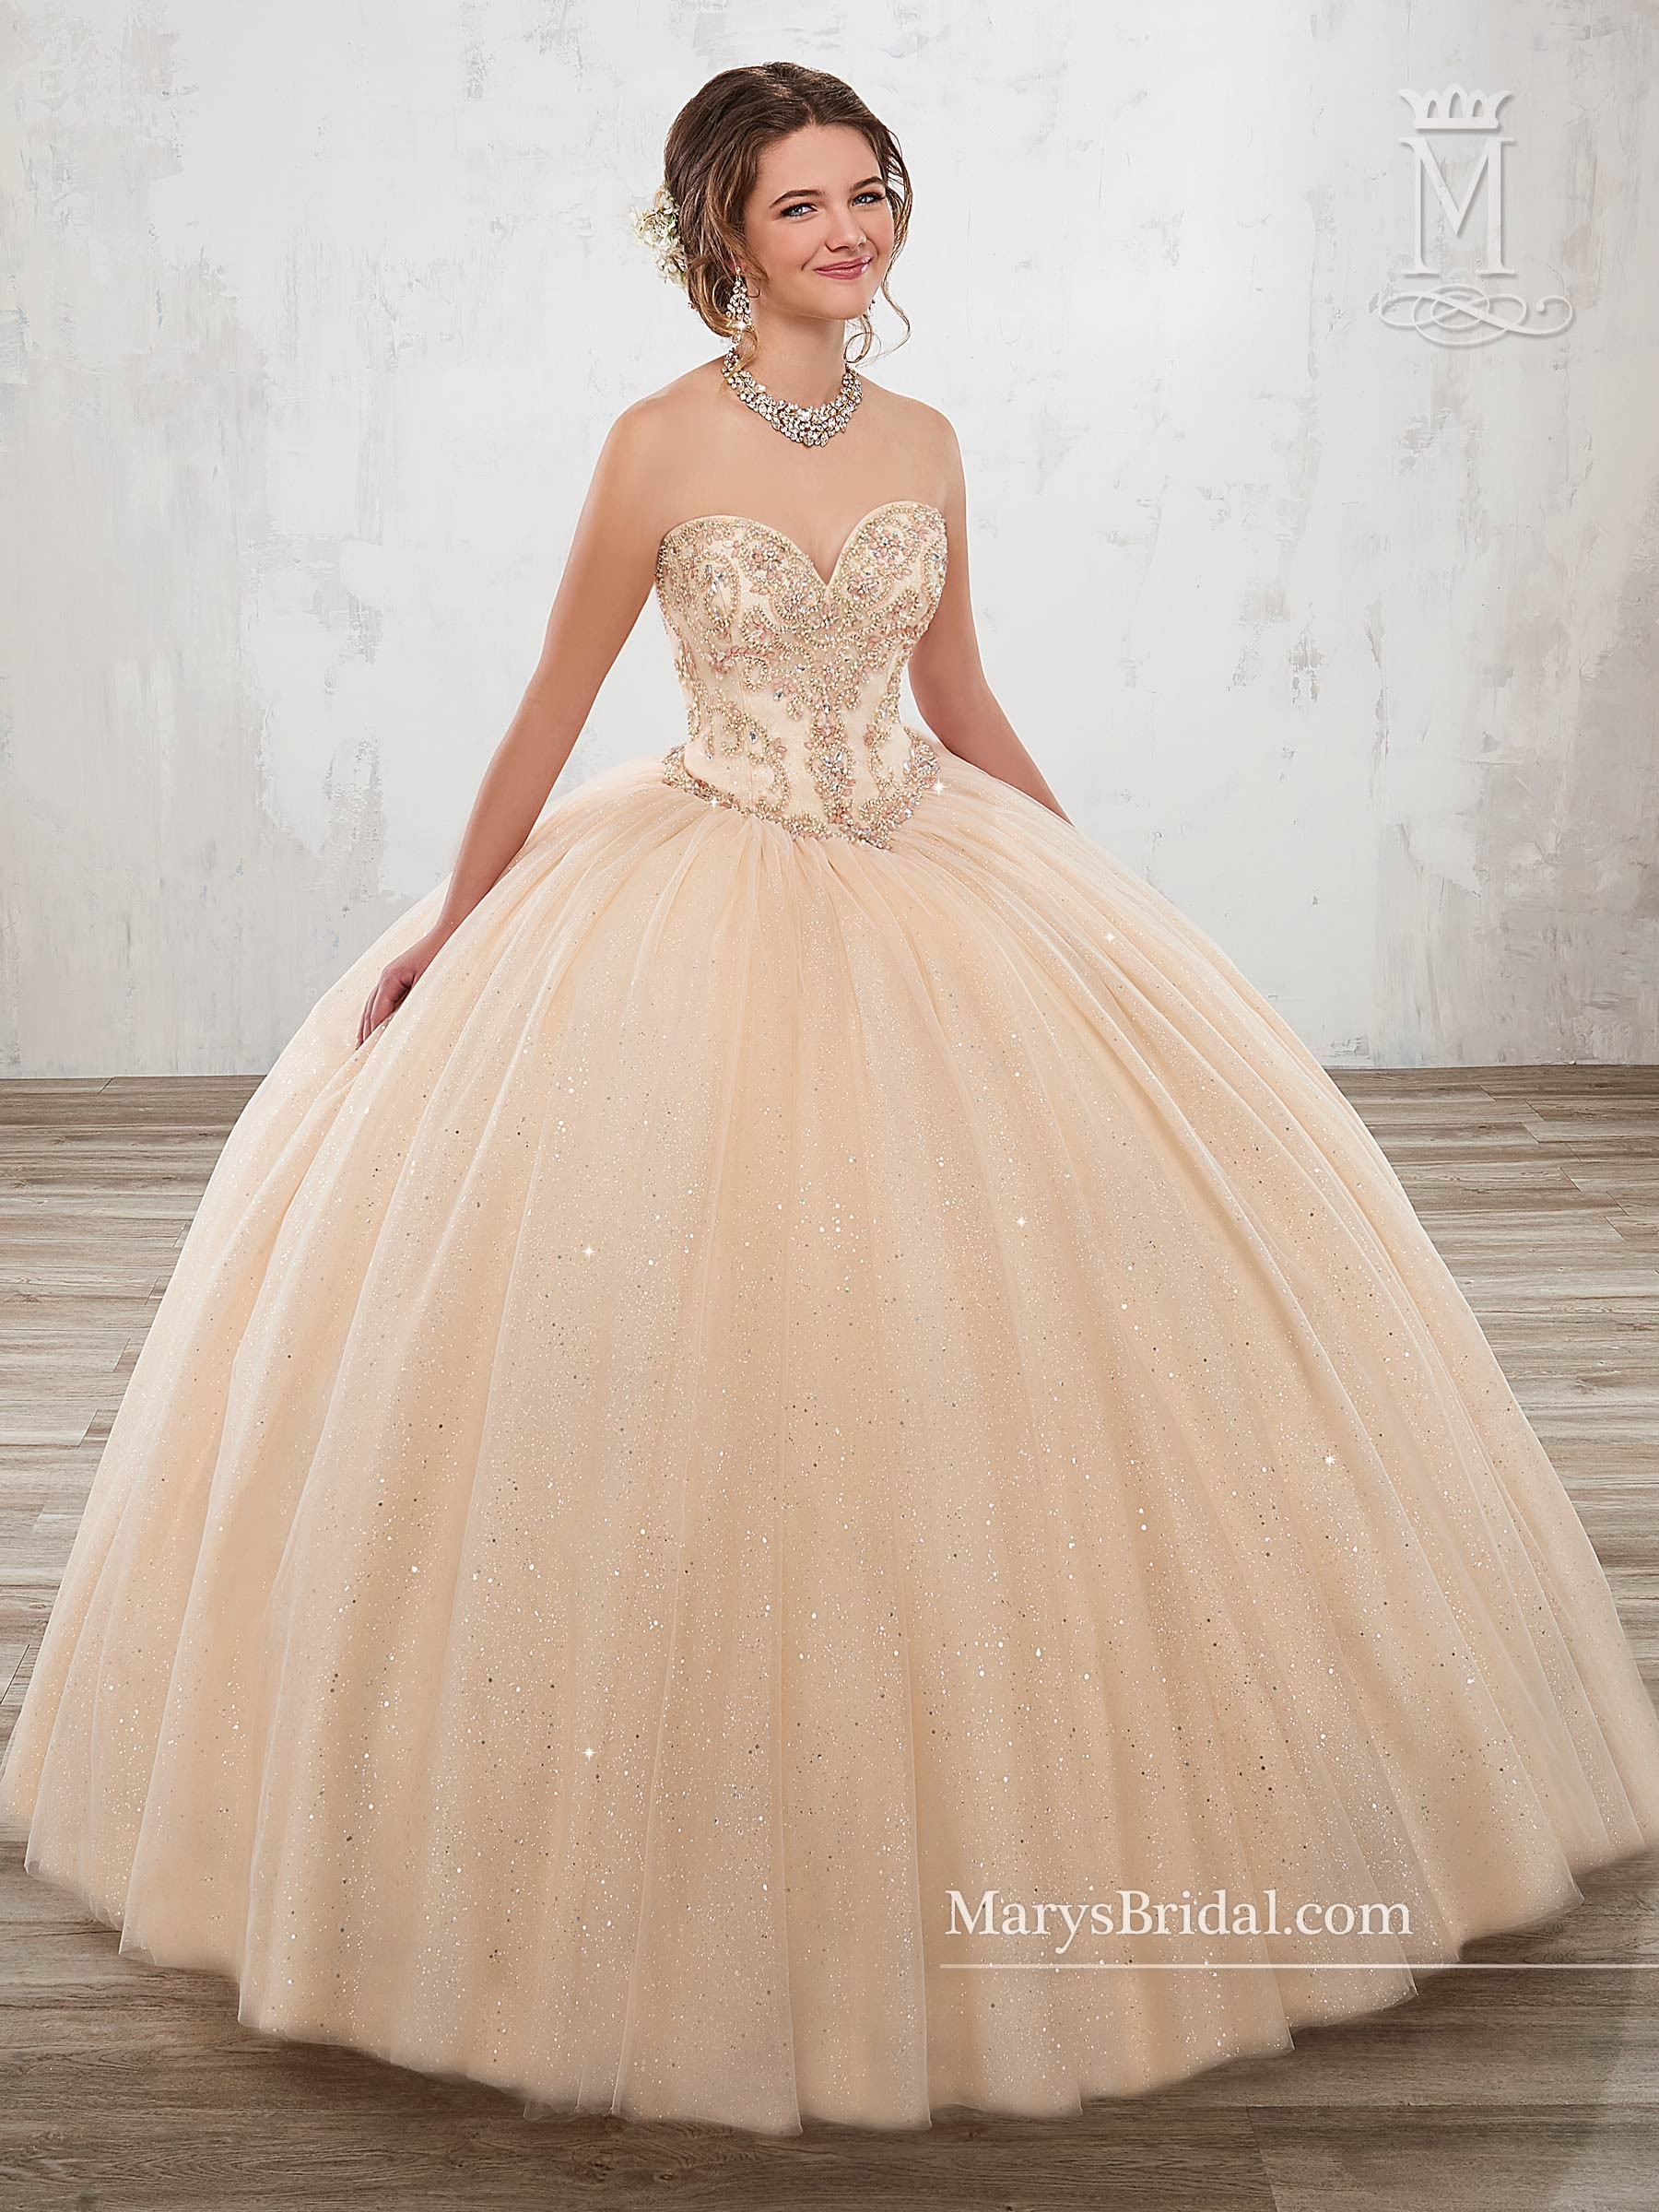 31fc105e5 Marys Bridal 4806 Quinceanera Dress. Tap to expand